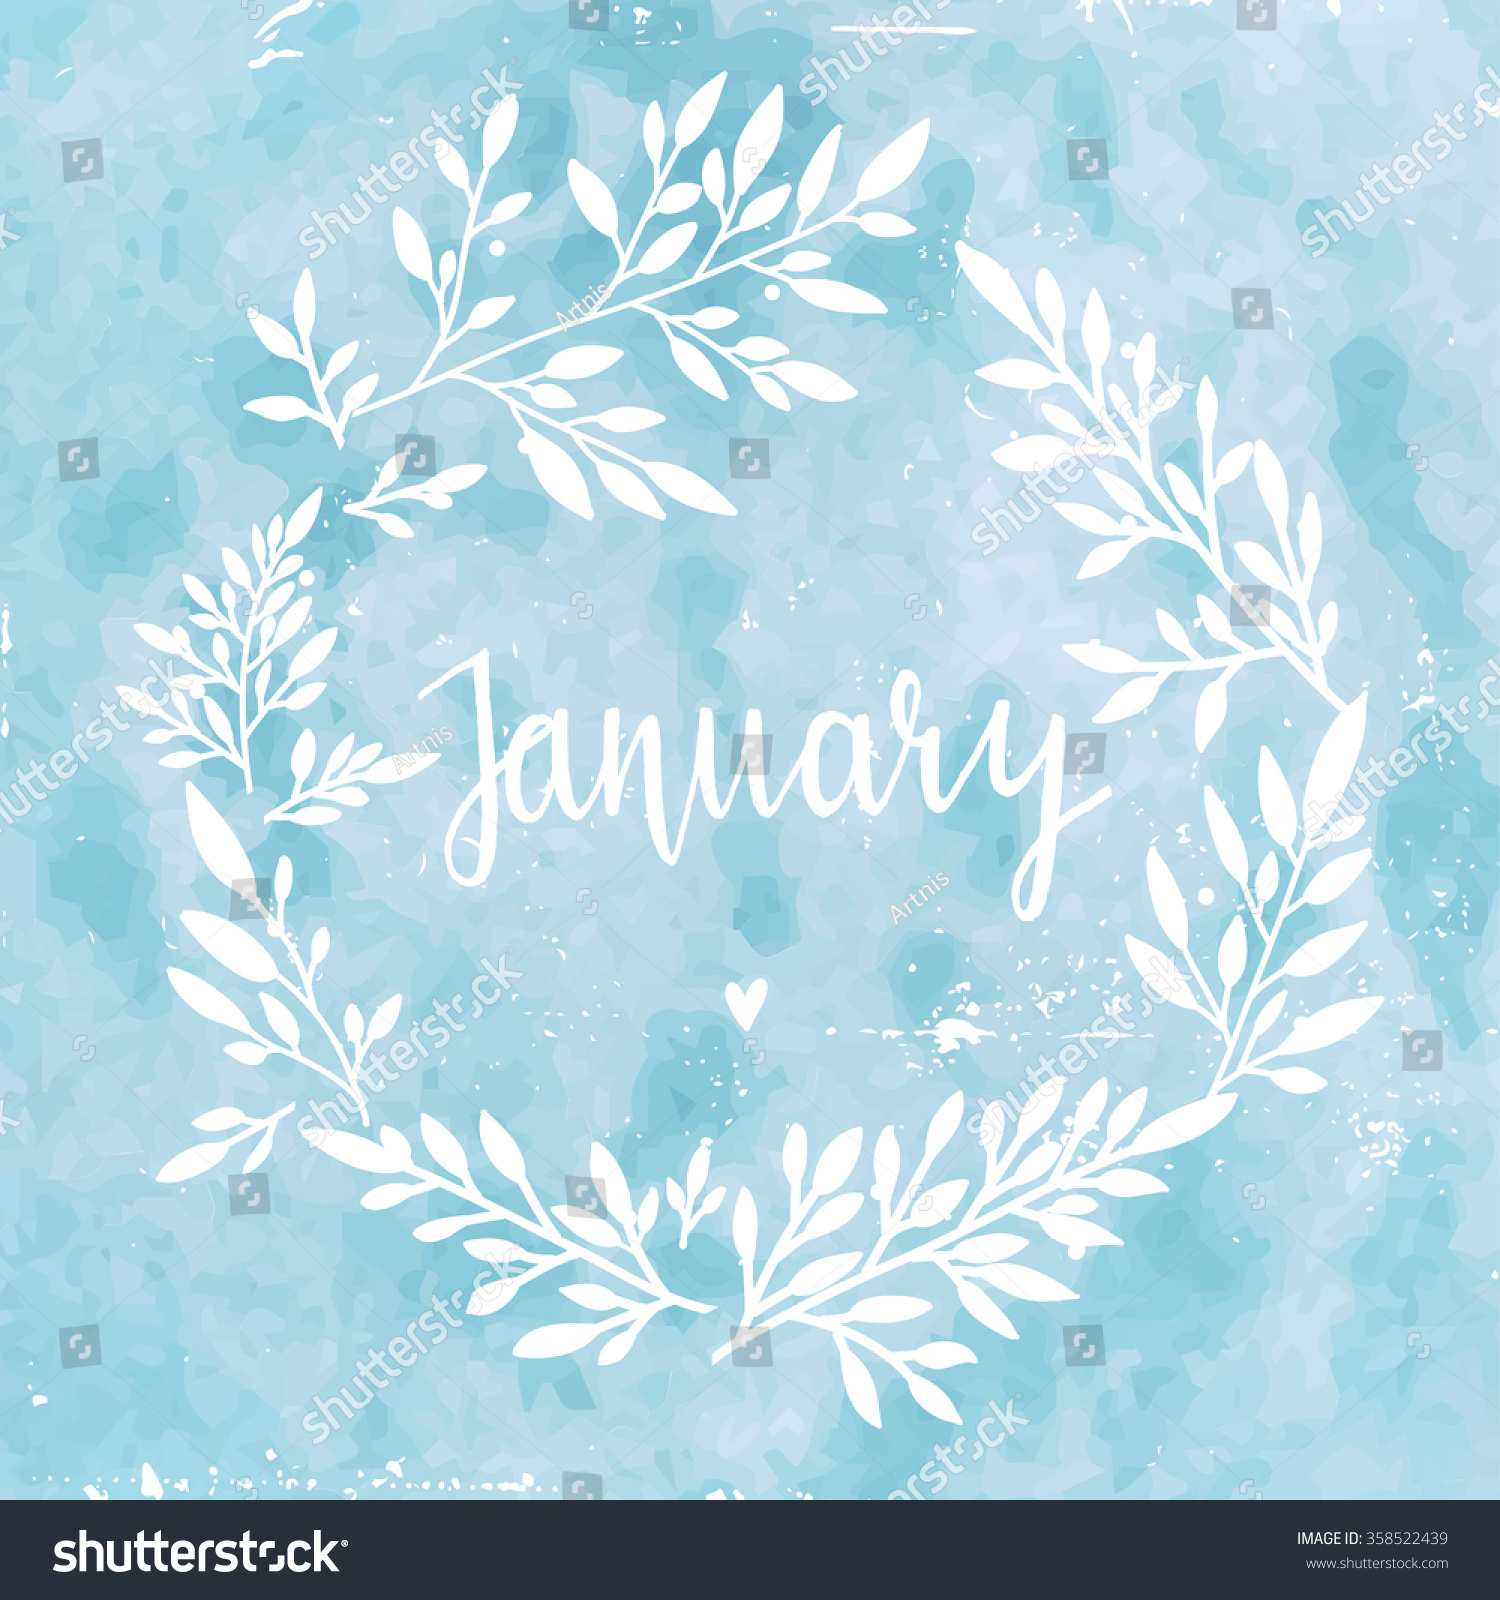 January Background Images 99 images in Collection Page 2 1500x1600